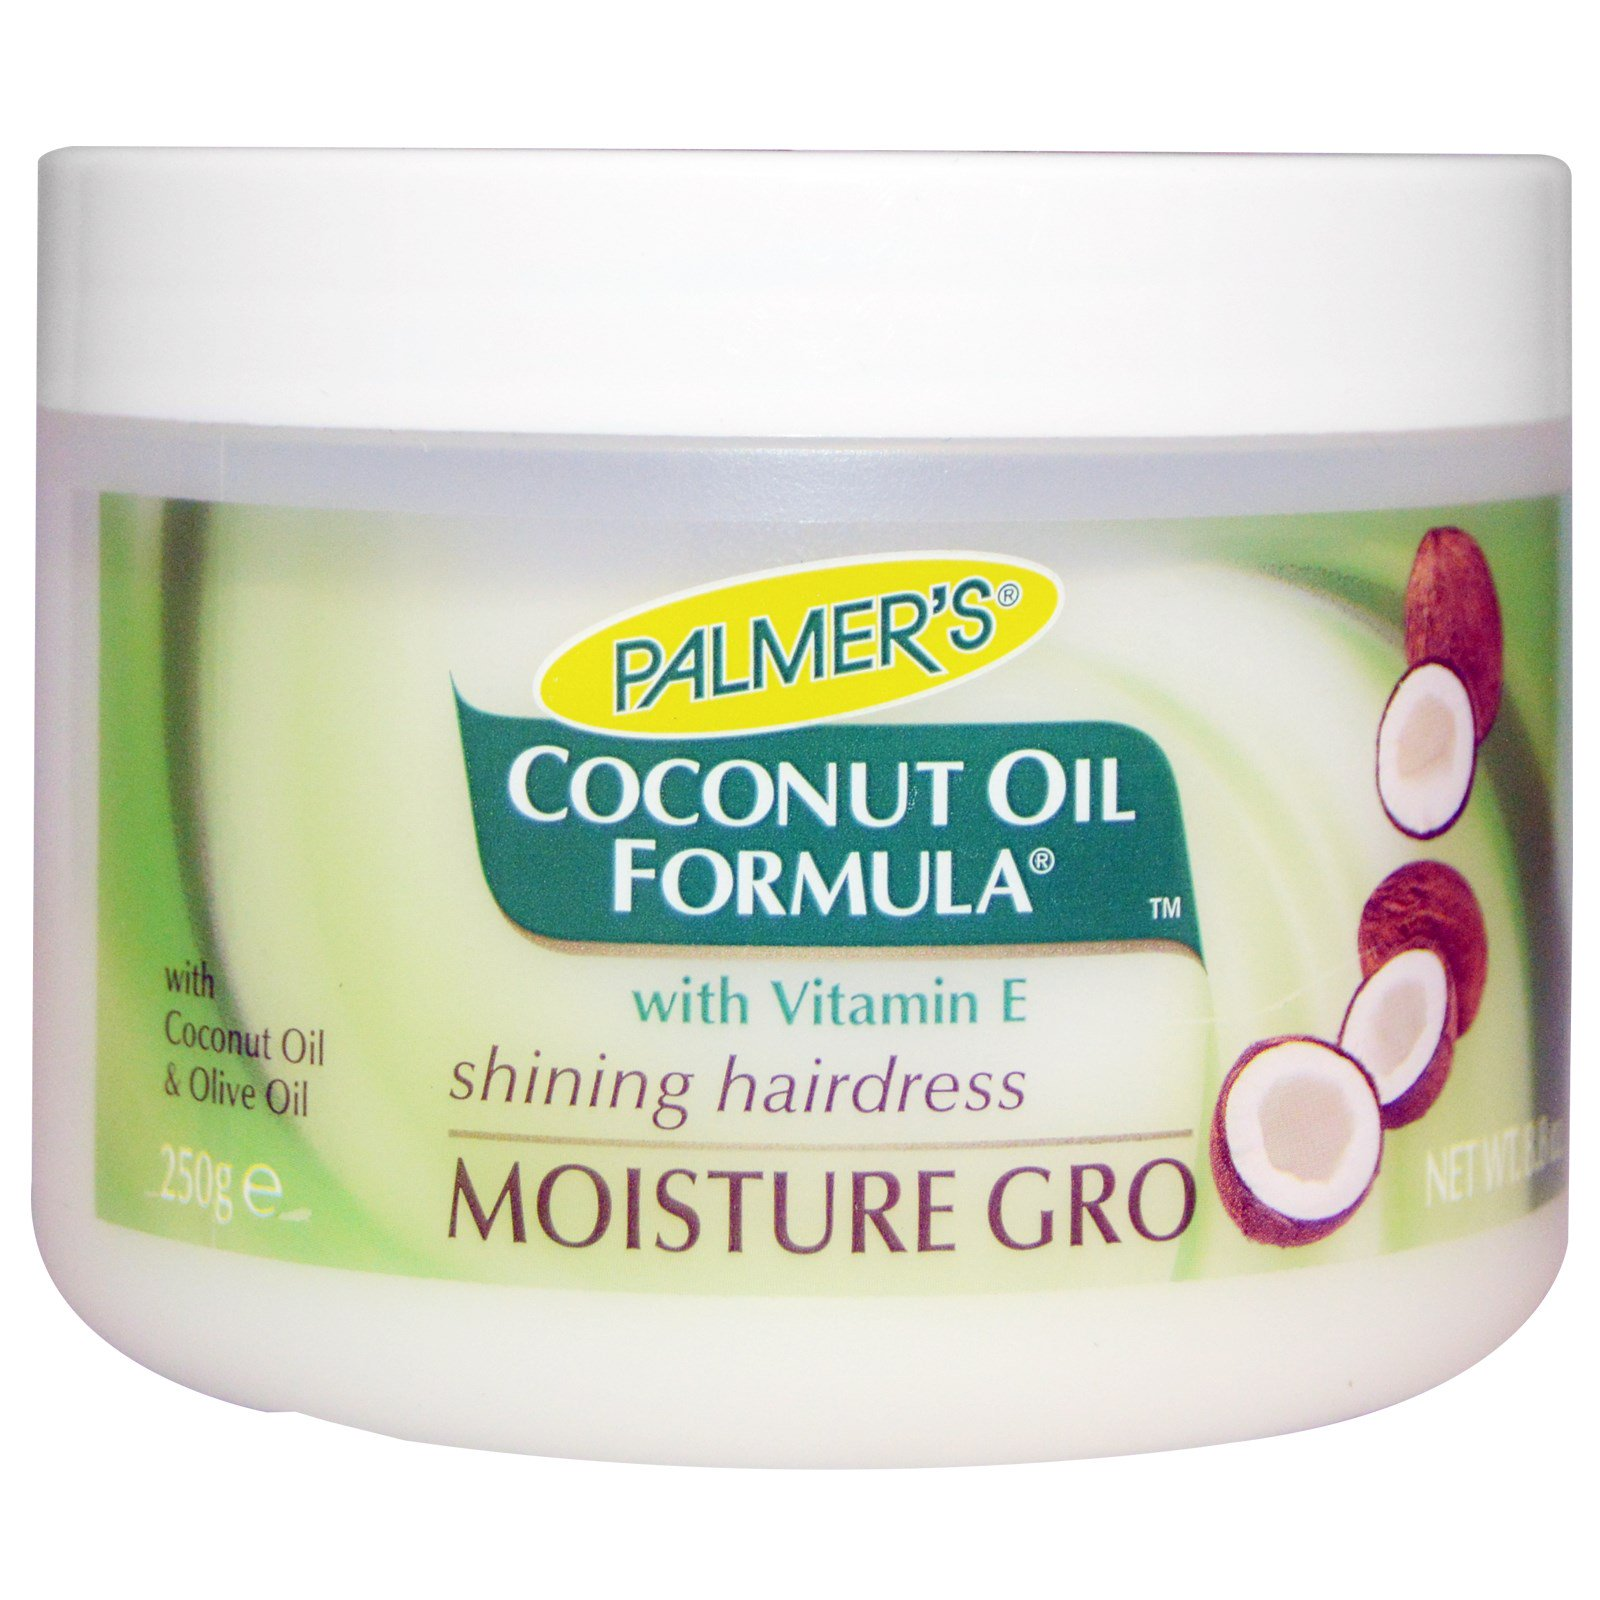 Palmer's, Coconut Oil Formula, with Vitamin E, Moisture Gro Hairdress, 8.8 oz (250 g)